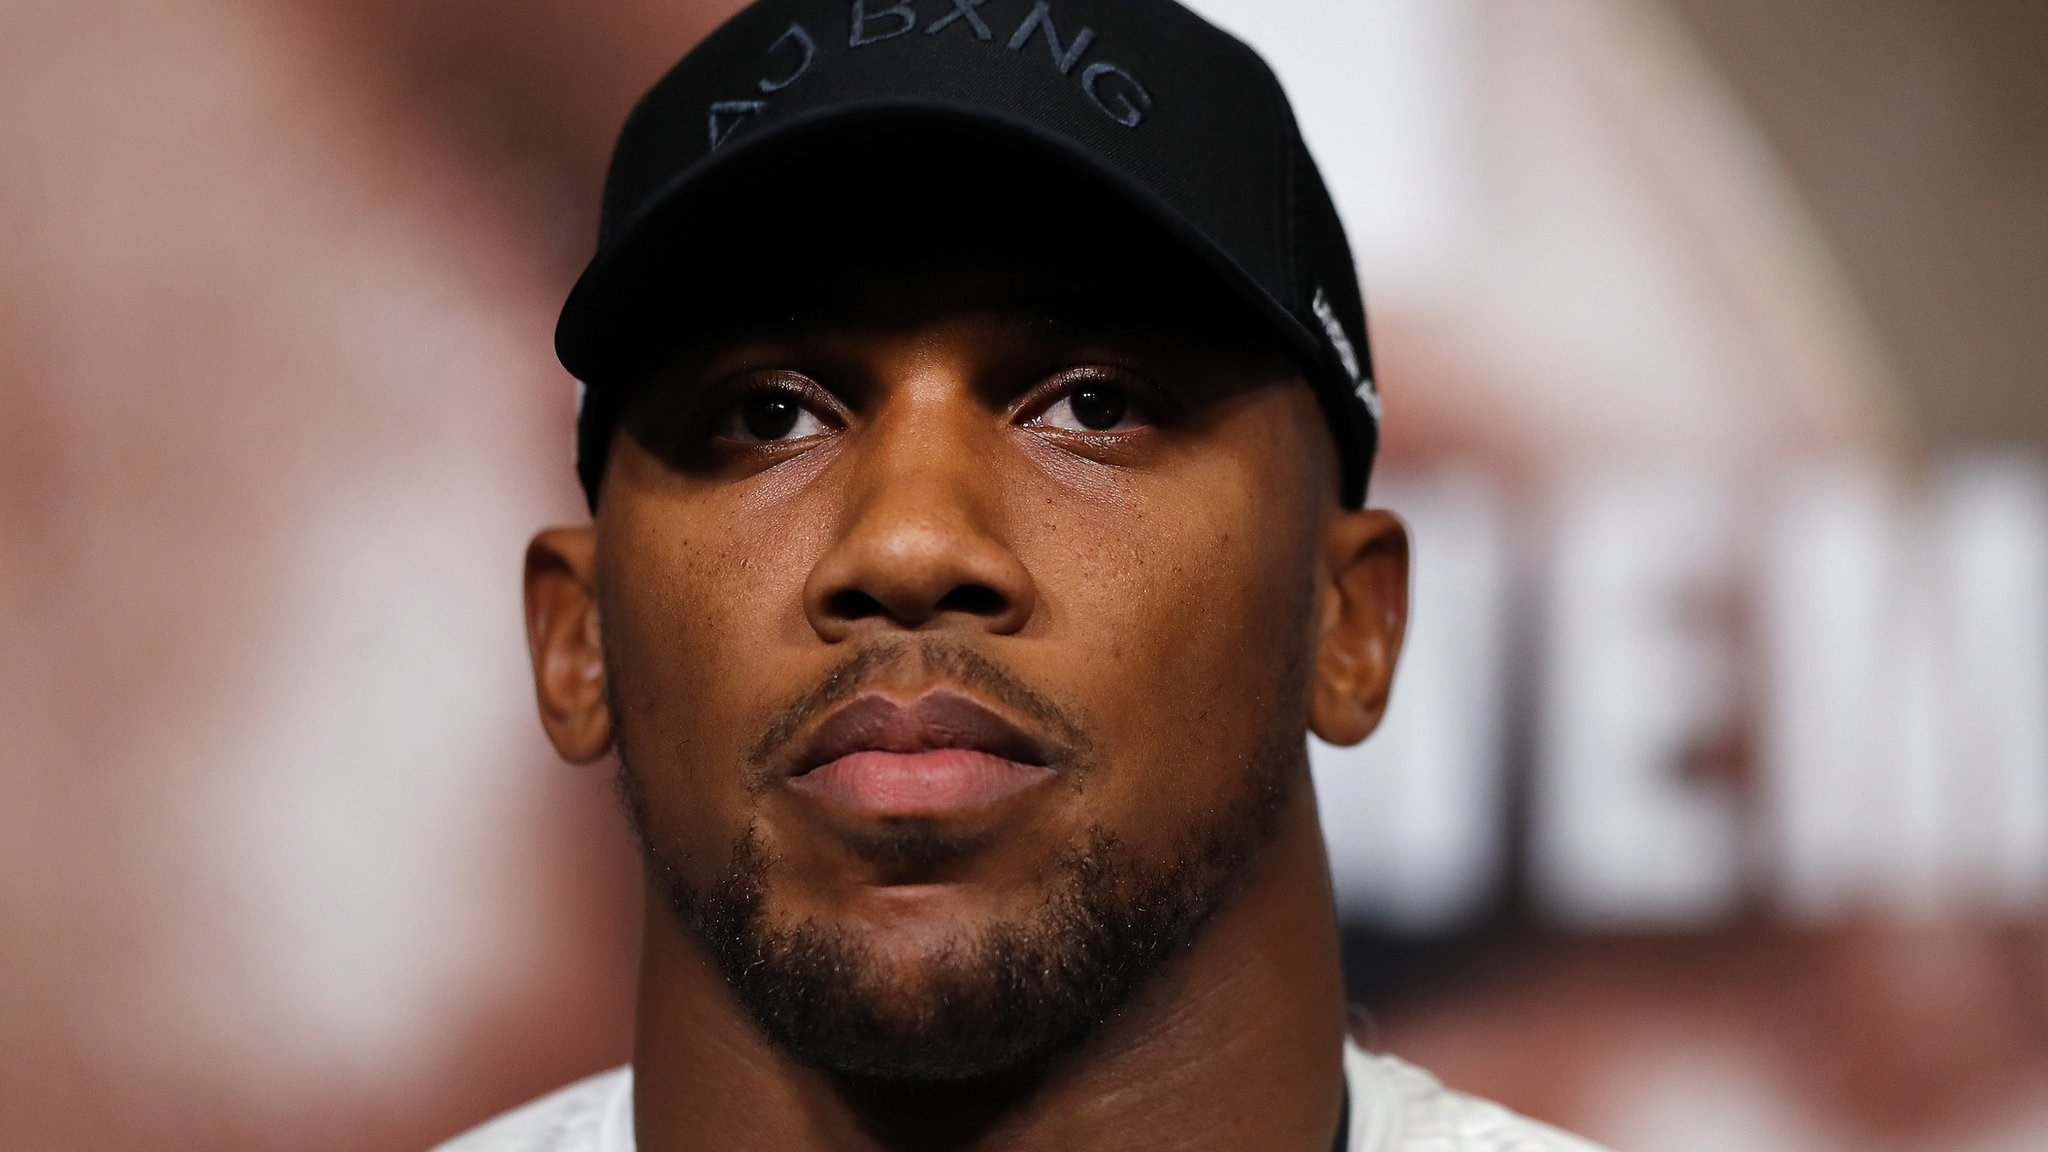 'I have to look at the end goal' - Joshua changing approach for Povetkin